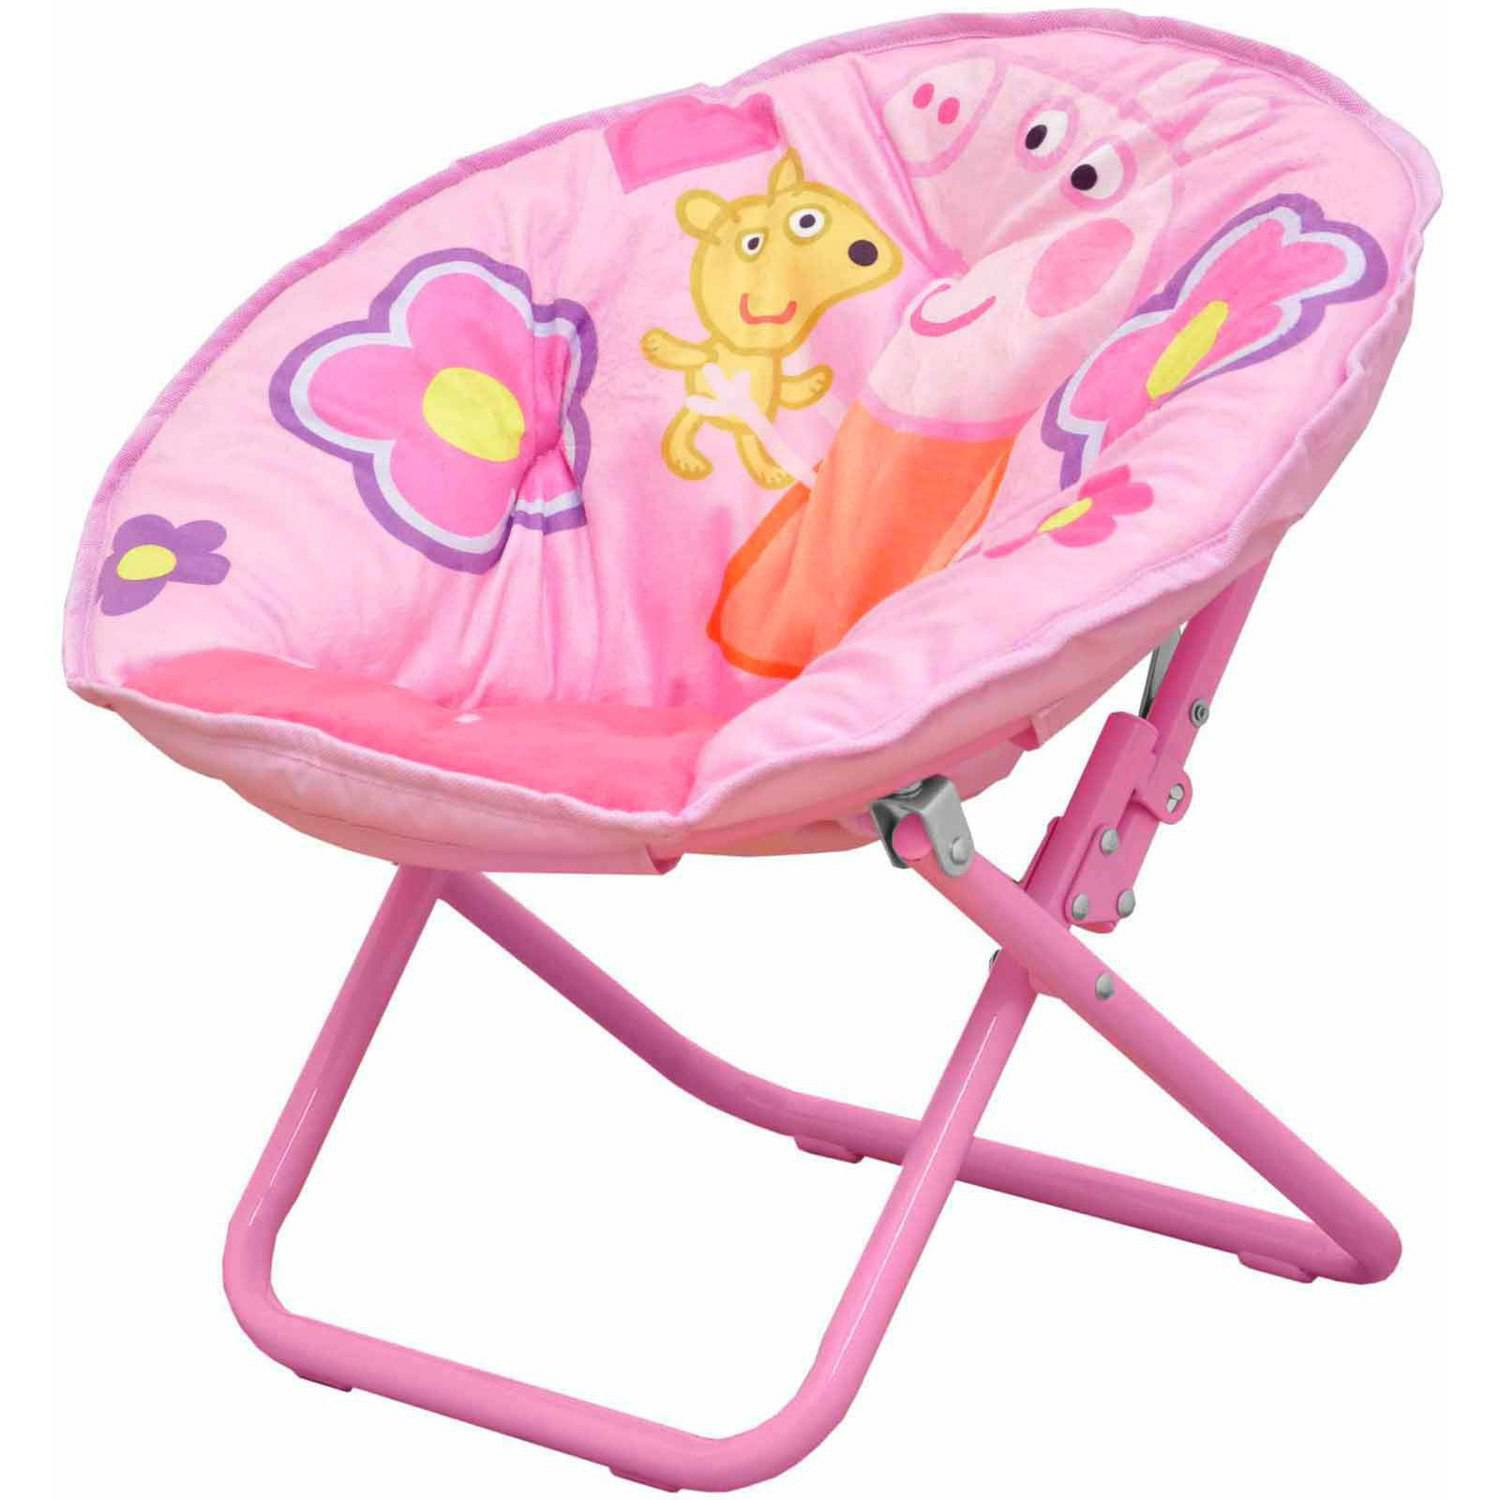 Peppa Pig Collapsible Saucer Chair Pink Walmart